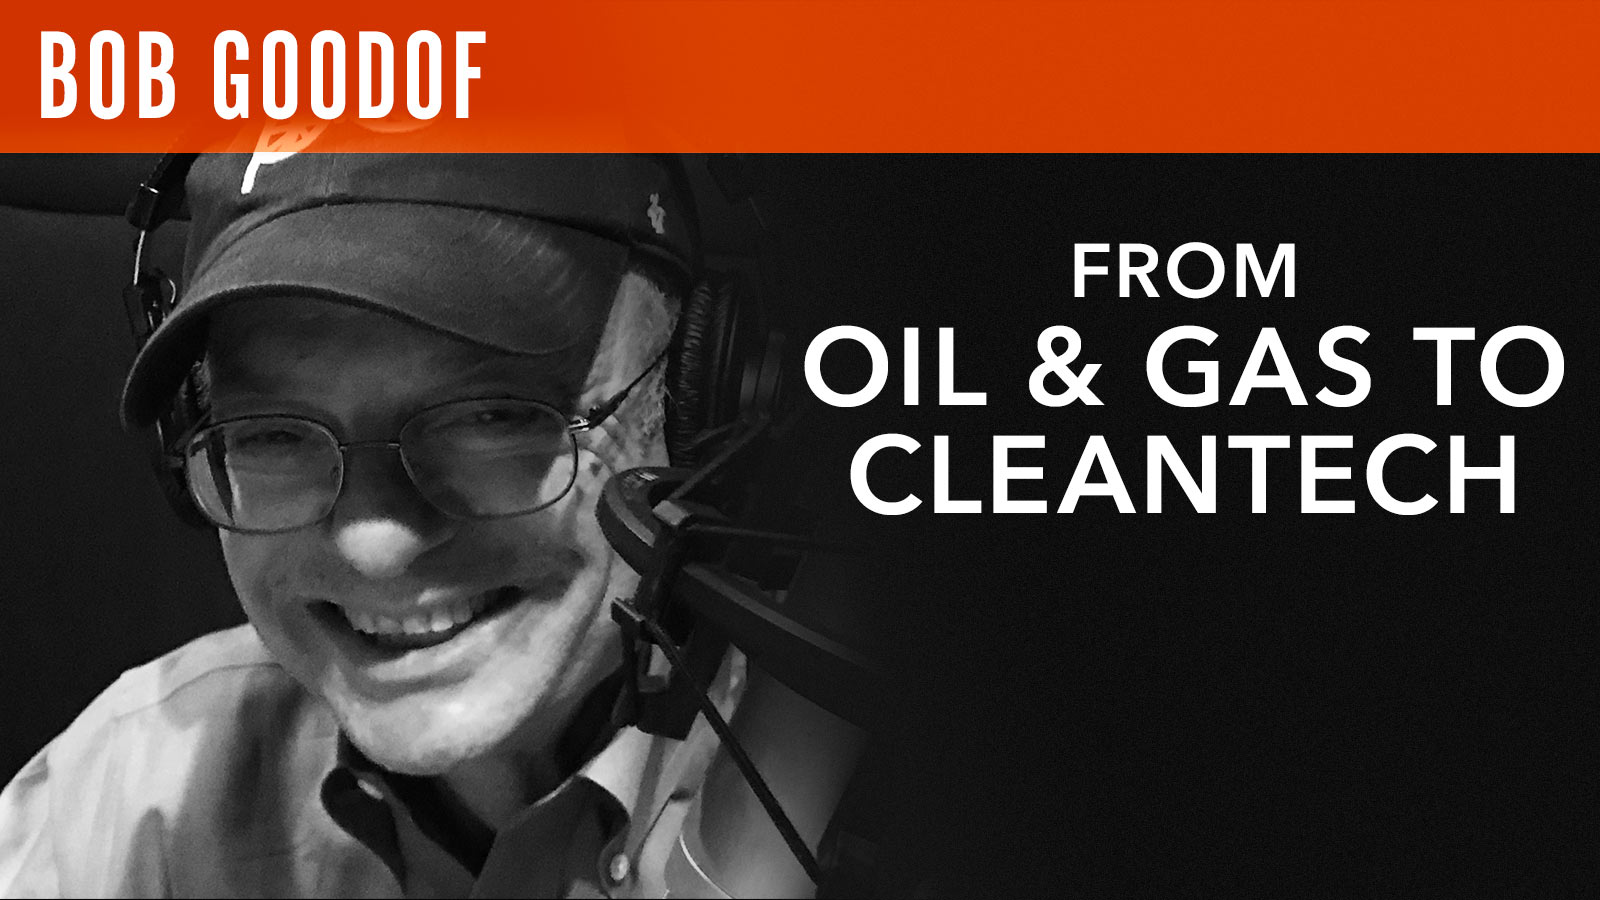 Bob Goodof  From Oil & Gas to Cleantech